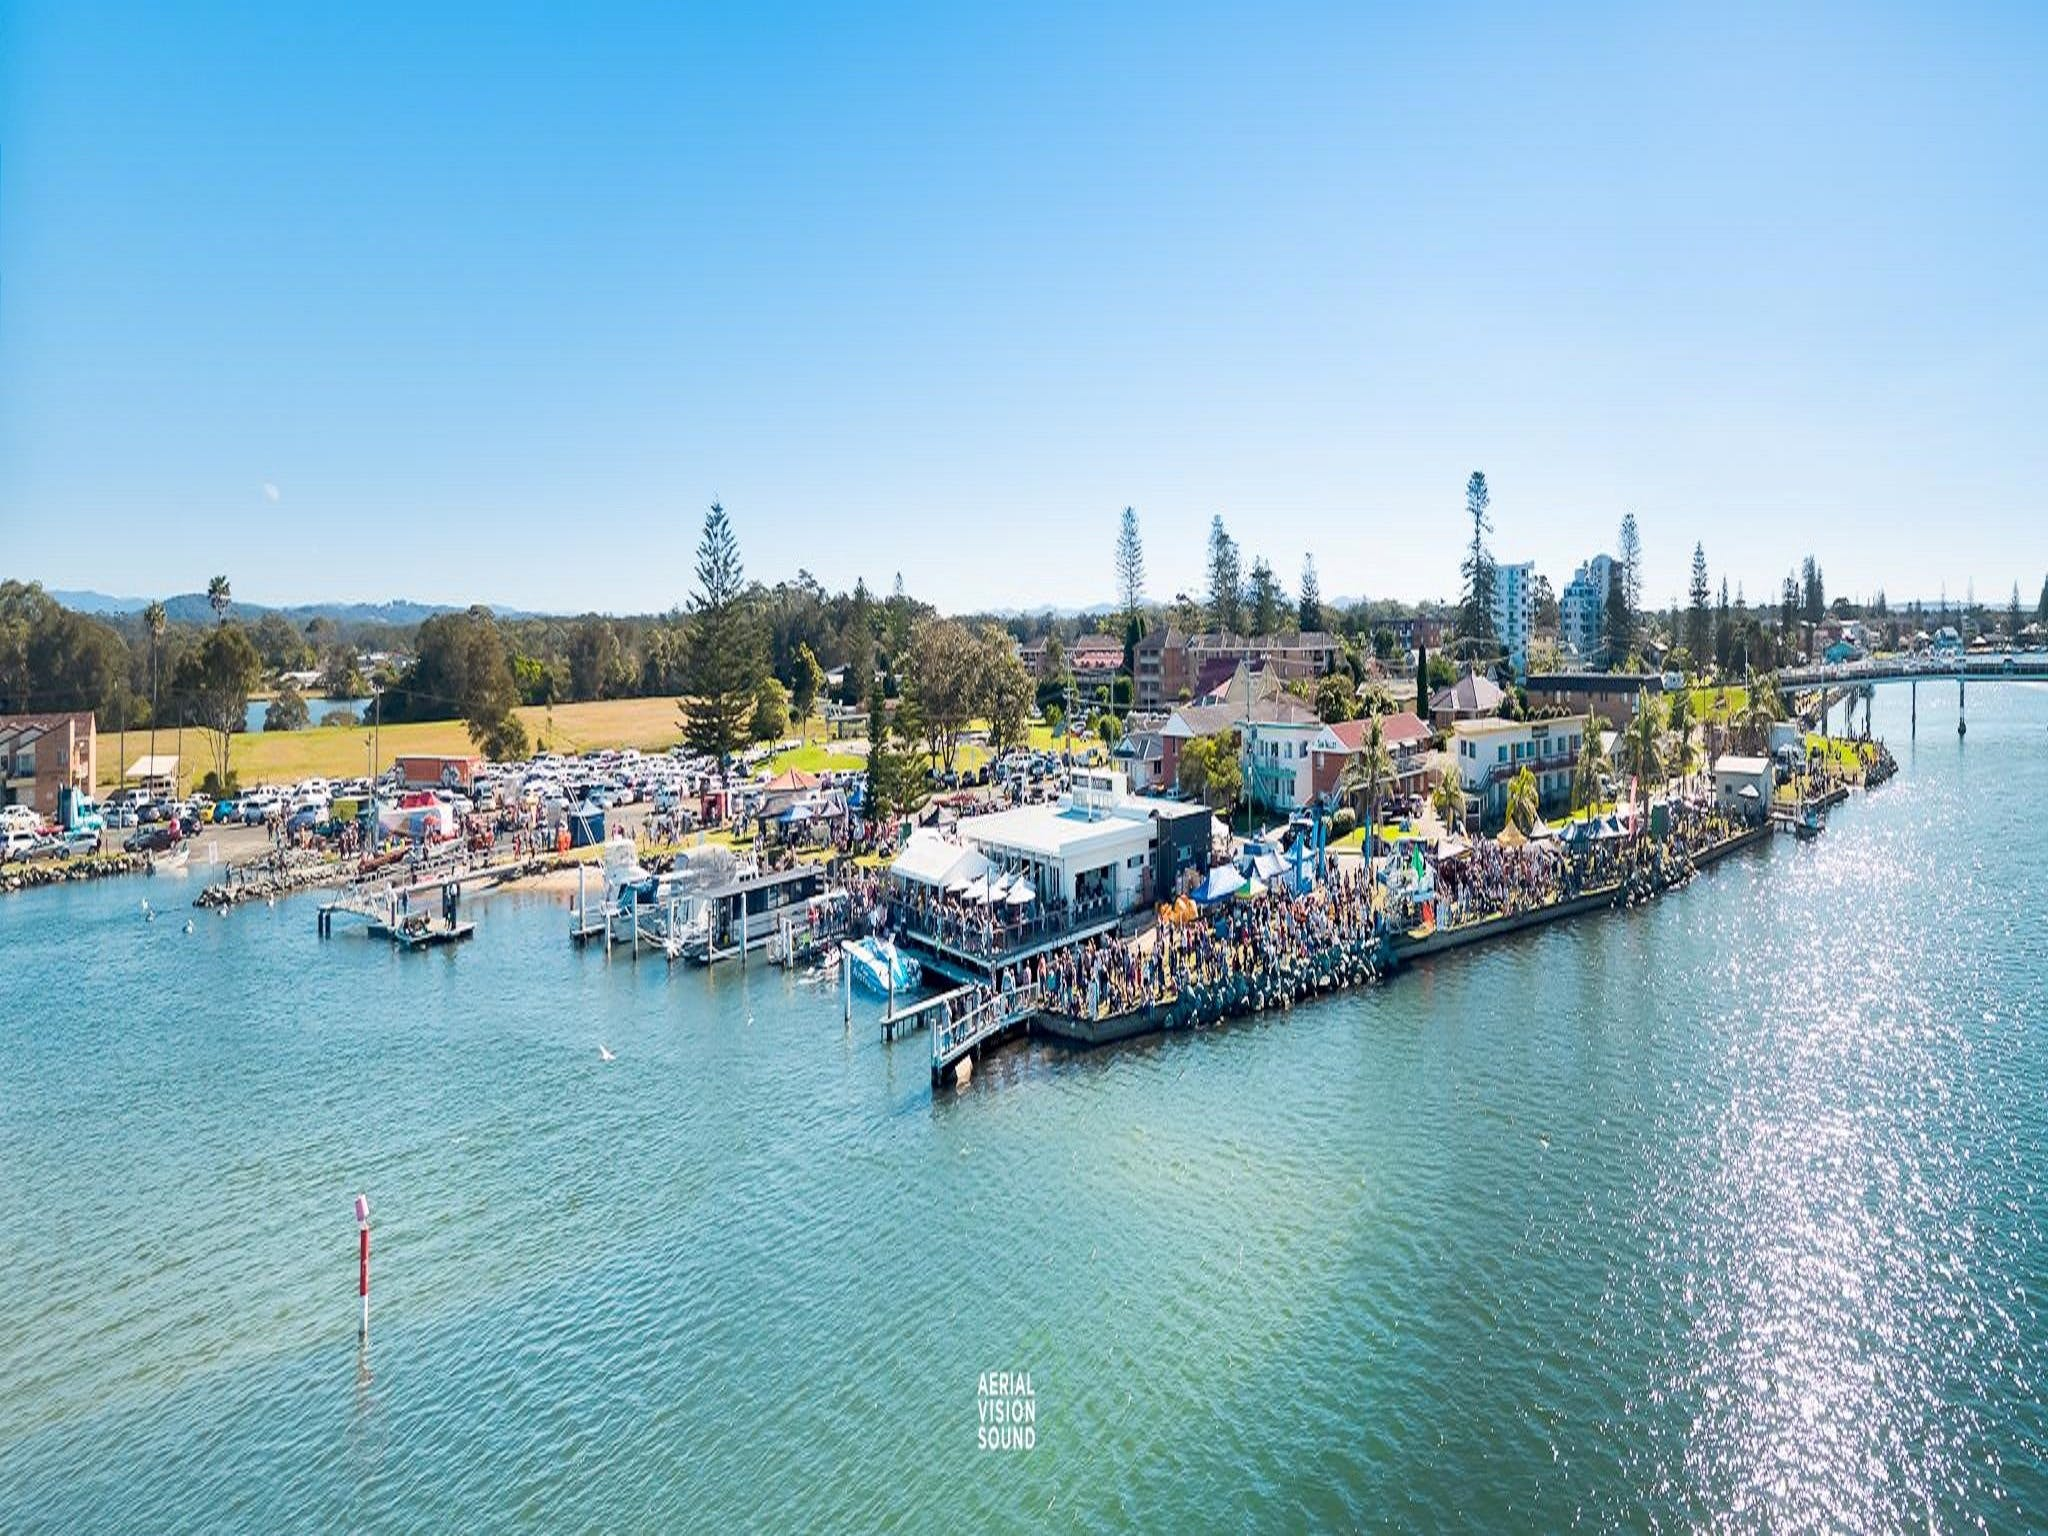 Fred Williams Aquatic Festival - QLD Tourism